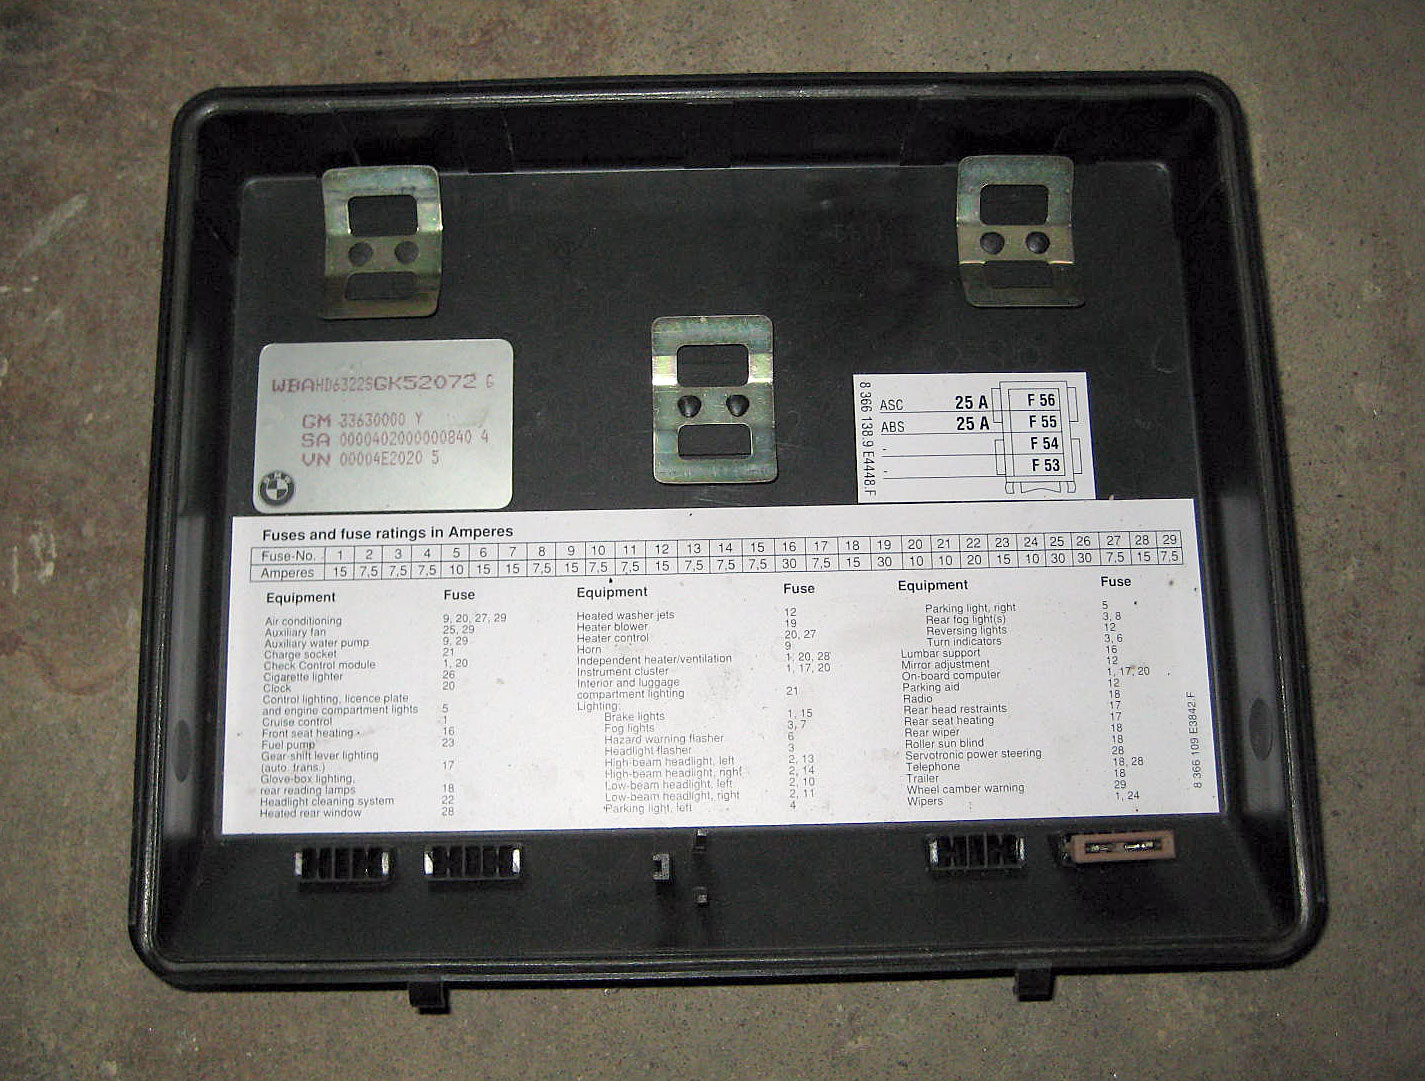 E34 Fuse Box Location Wiring Diagram Will Be A Thing 1991 Bmw 525i 21 Images House